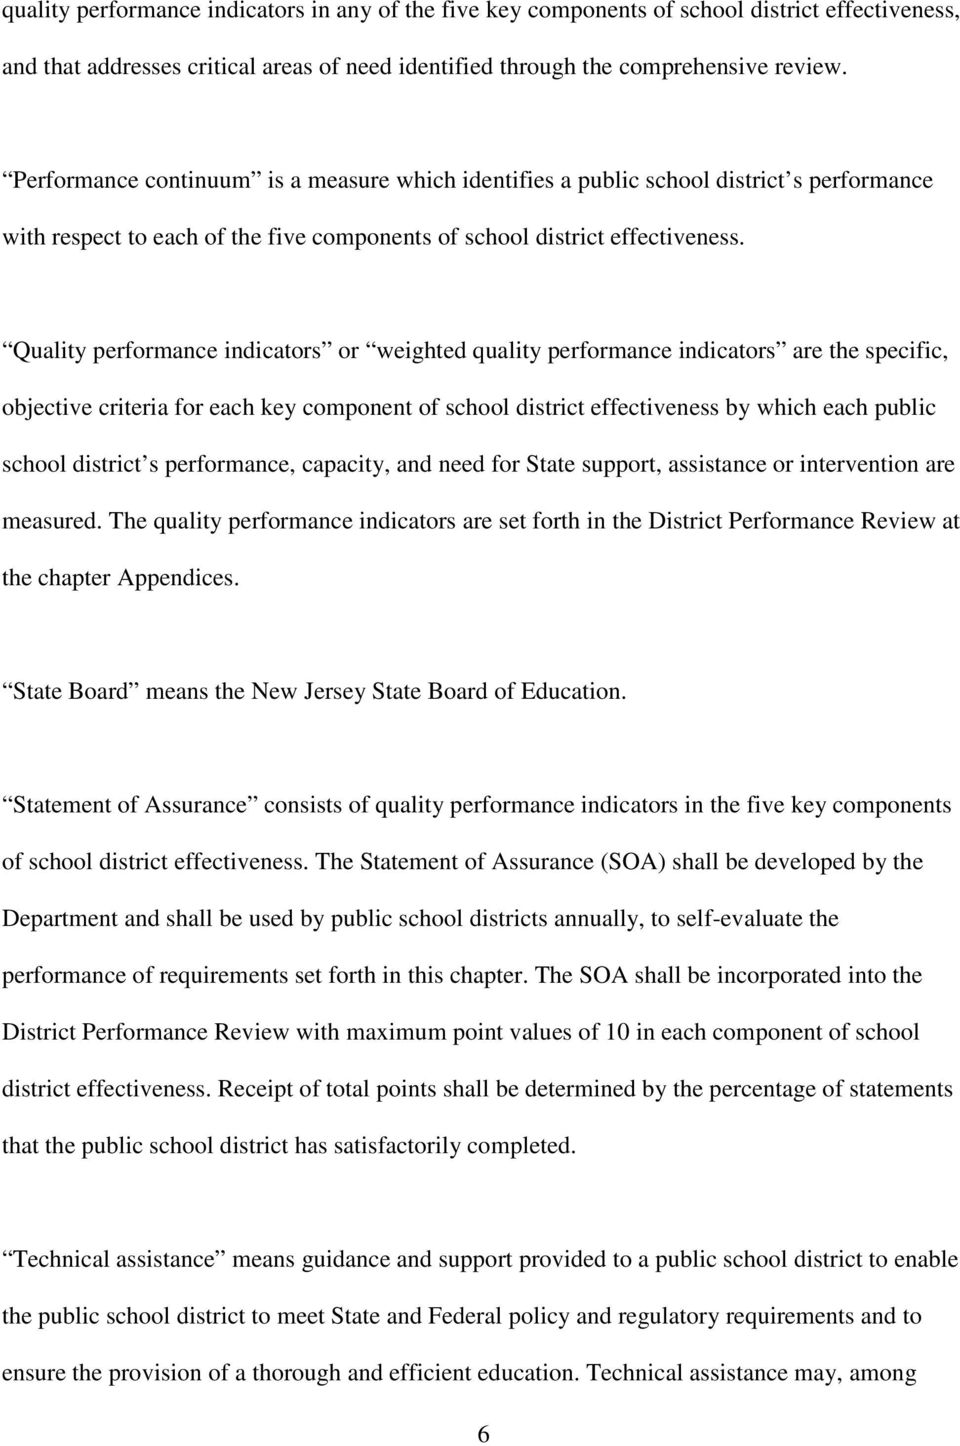 Quality performance indicators or weighted quality performance indicators are the specific, objective criteria for each key component of school district effectiveness by which each public school